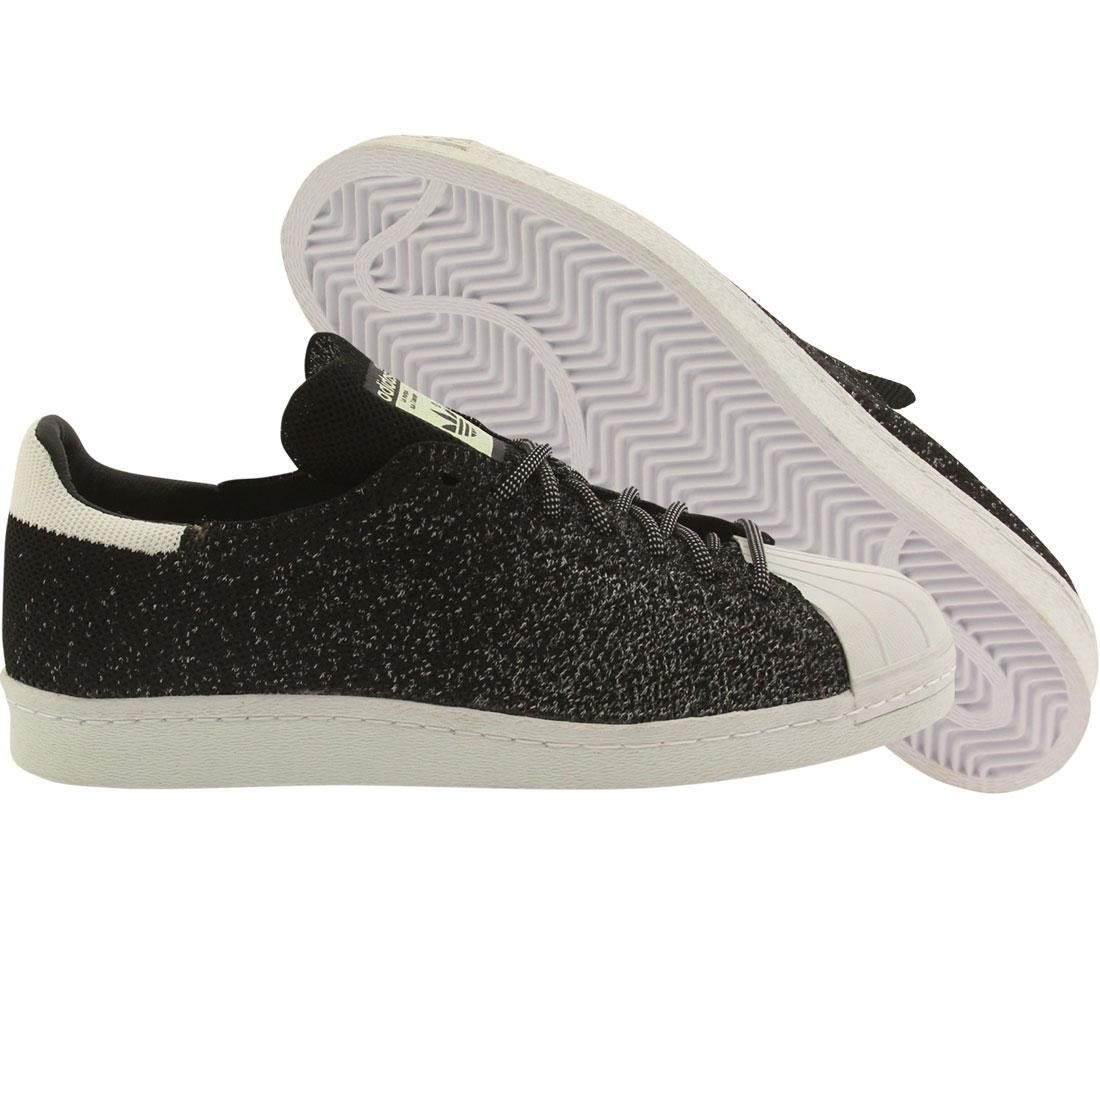 【海外限定】アディダス スーパースター ゲーム スニーカー メンズ靴 【 ADIDAS SUPERSTAR GAME MEN 80S ALL STAR PRIMEKNIT ASG PK BLACK CBLACK FTWWHT CRYWHT 】